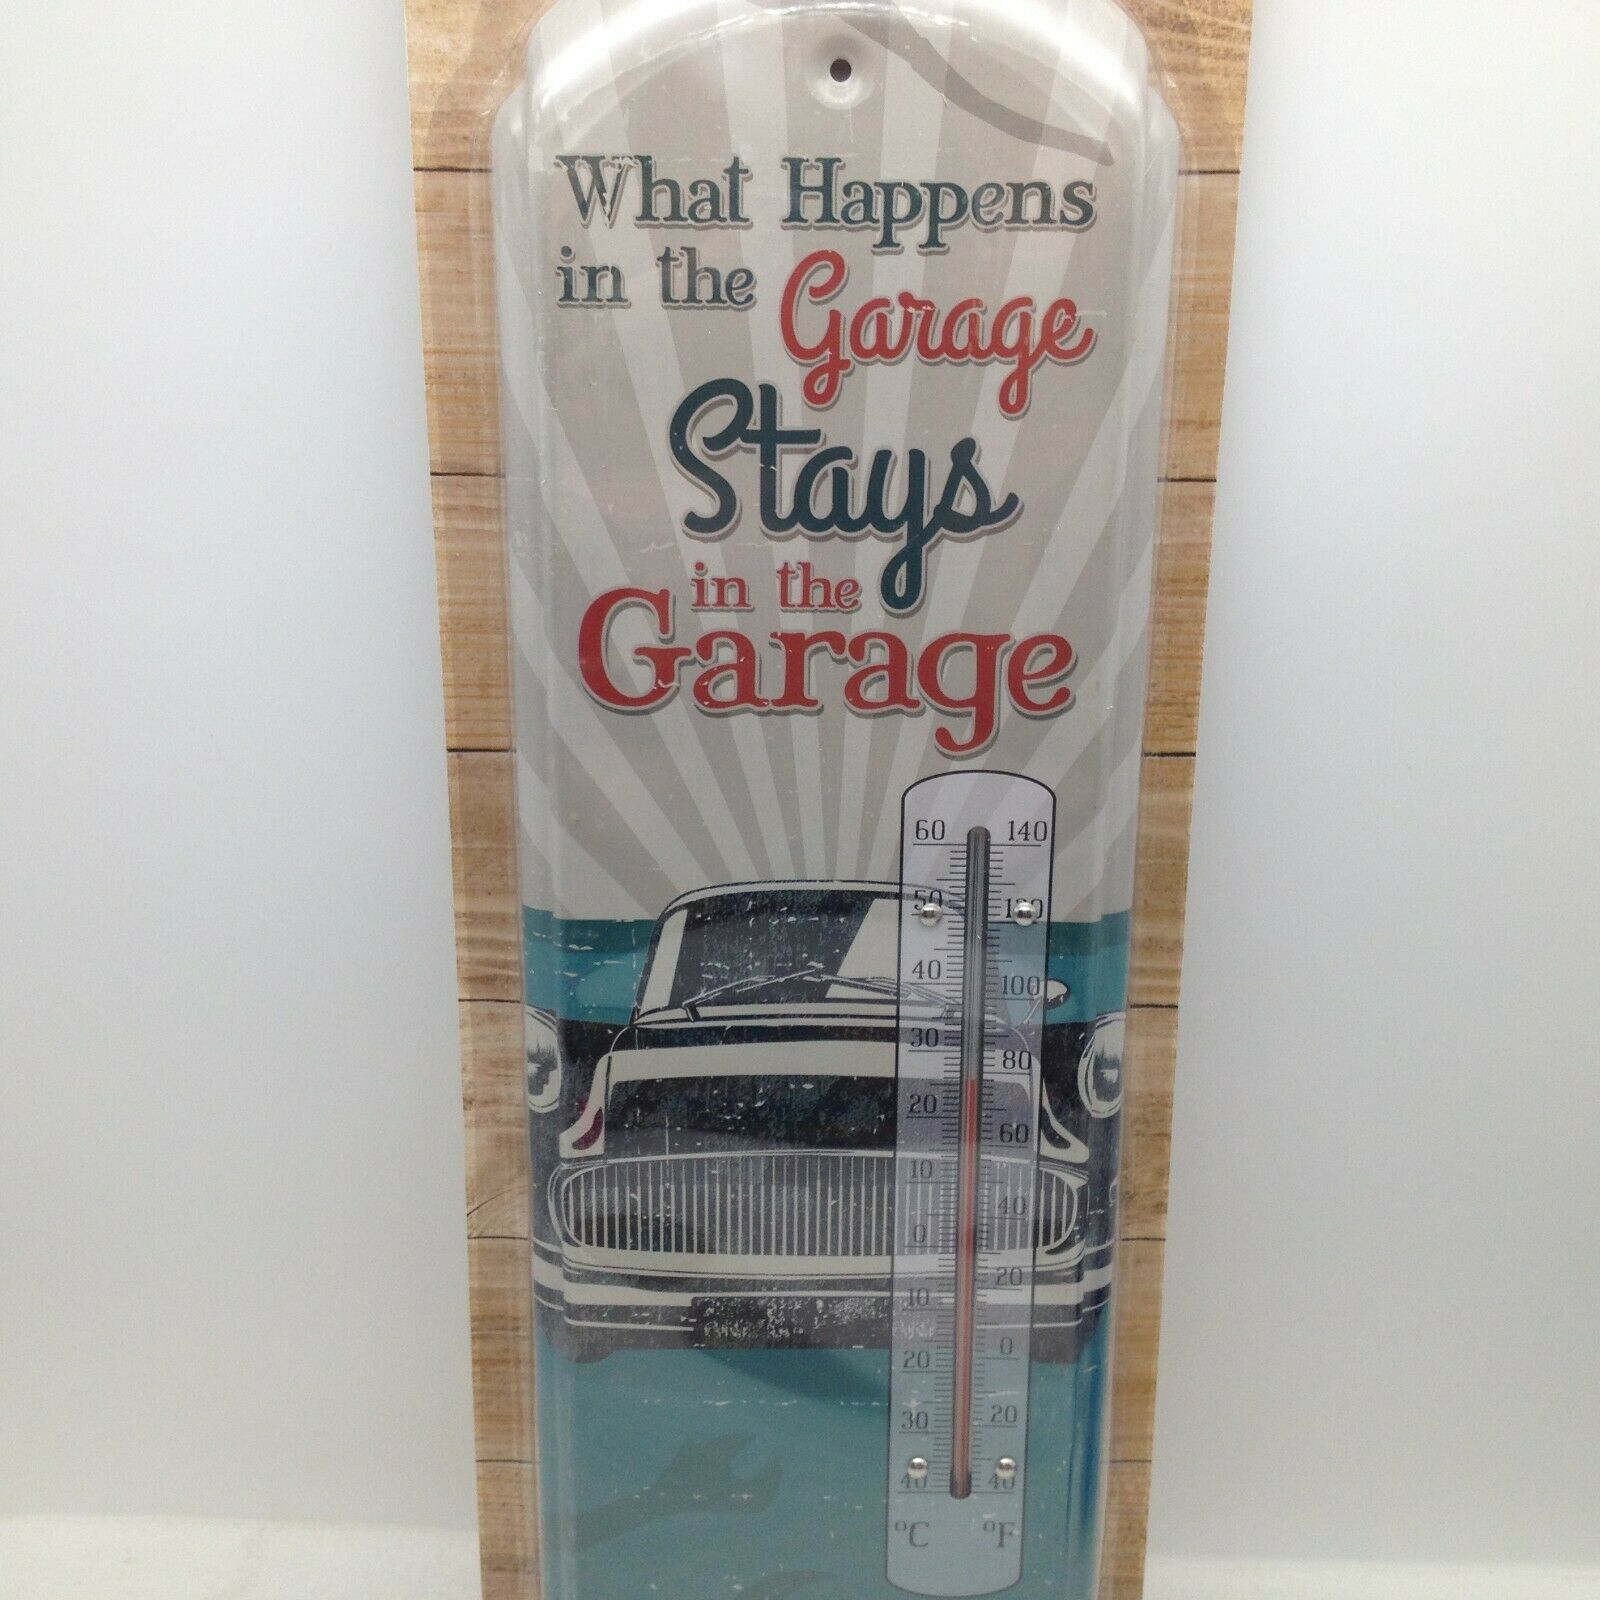 What Happens in the Garage Stays Indoor Outdoor Thermometer Metal 17.5 in Tall